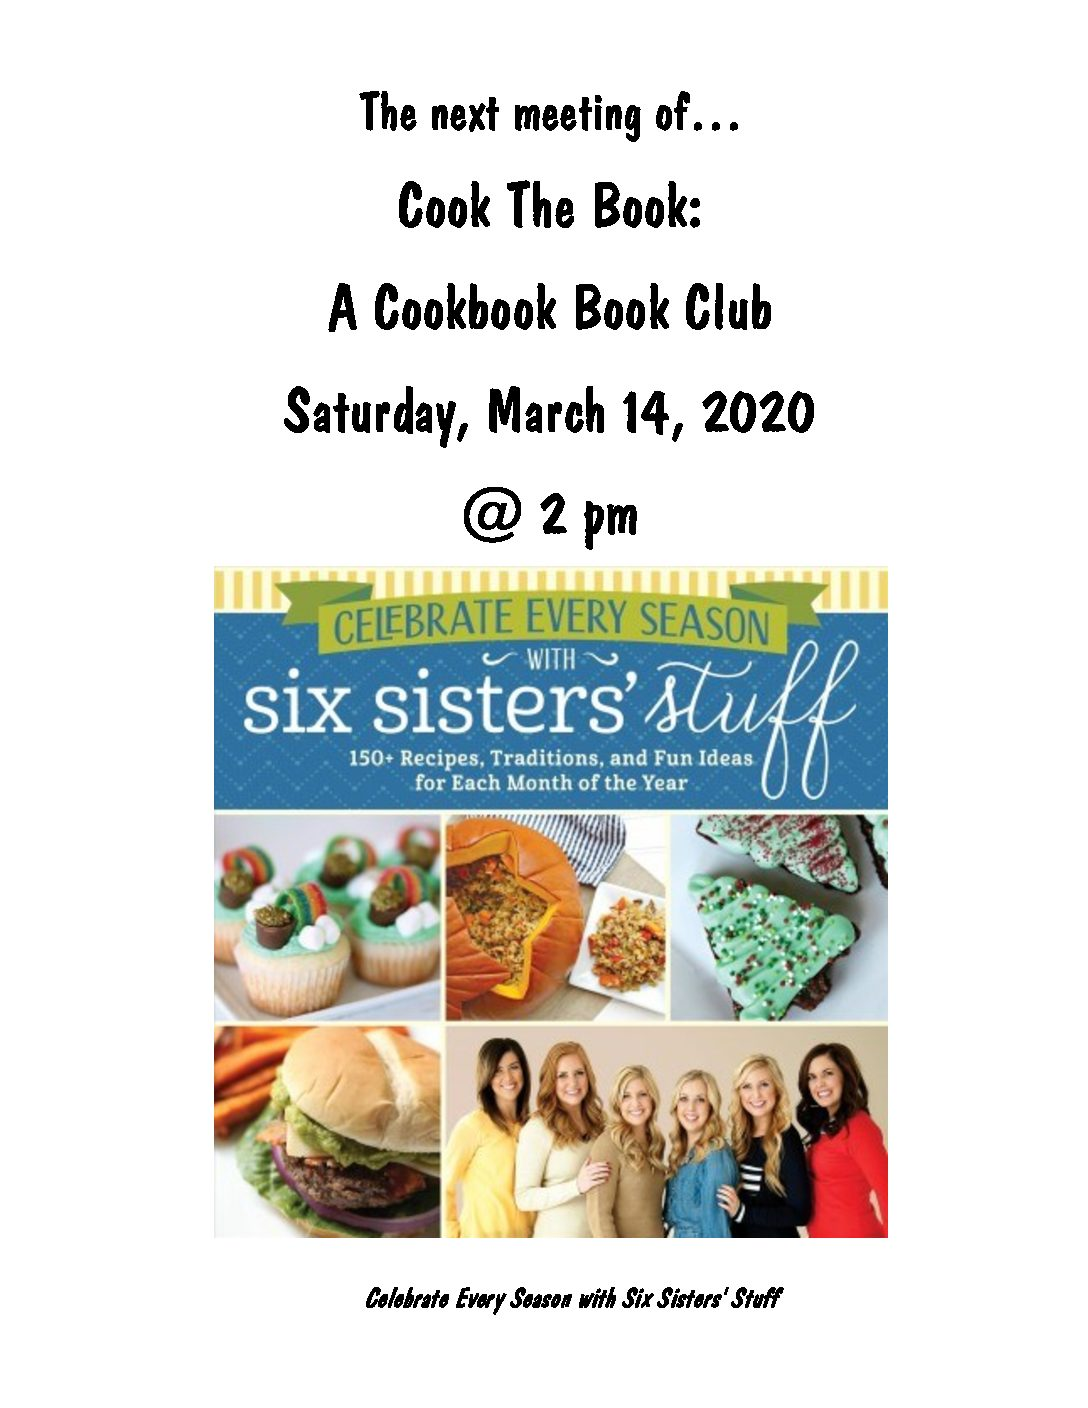 The next meeting of Cook The Book: a cookbook book club is Saturday, March 14, 2020 at 2 pm. The Book is Celebrate Every Season with Six Sisters' Stuff